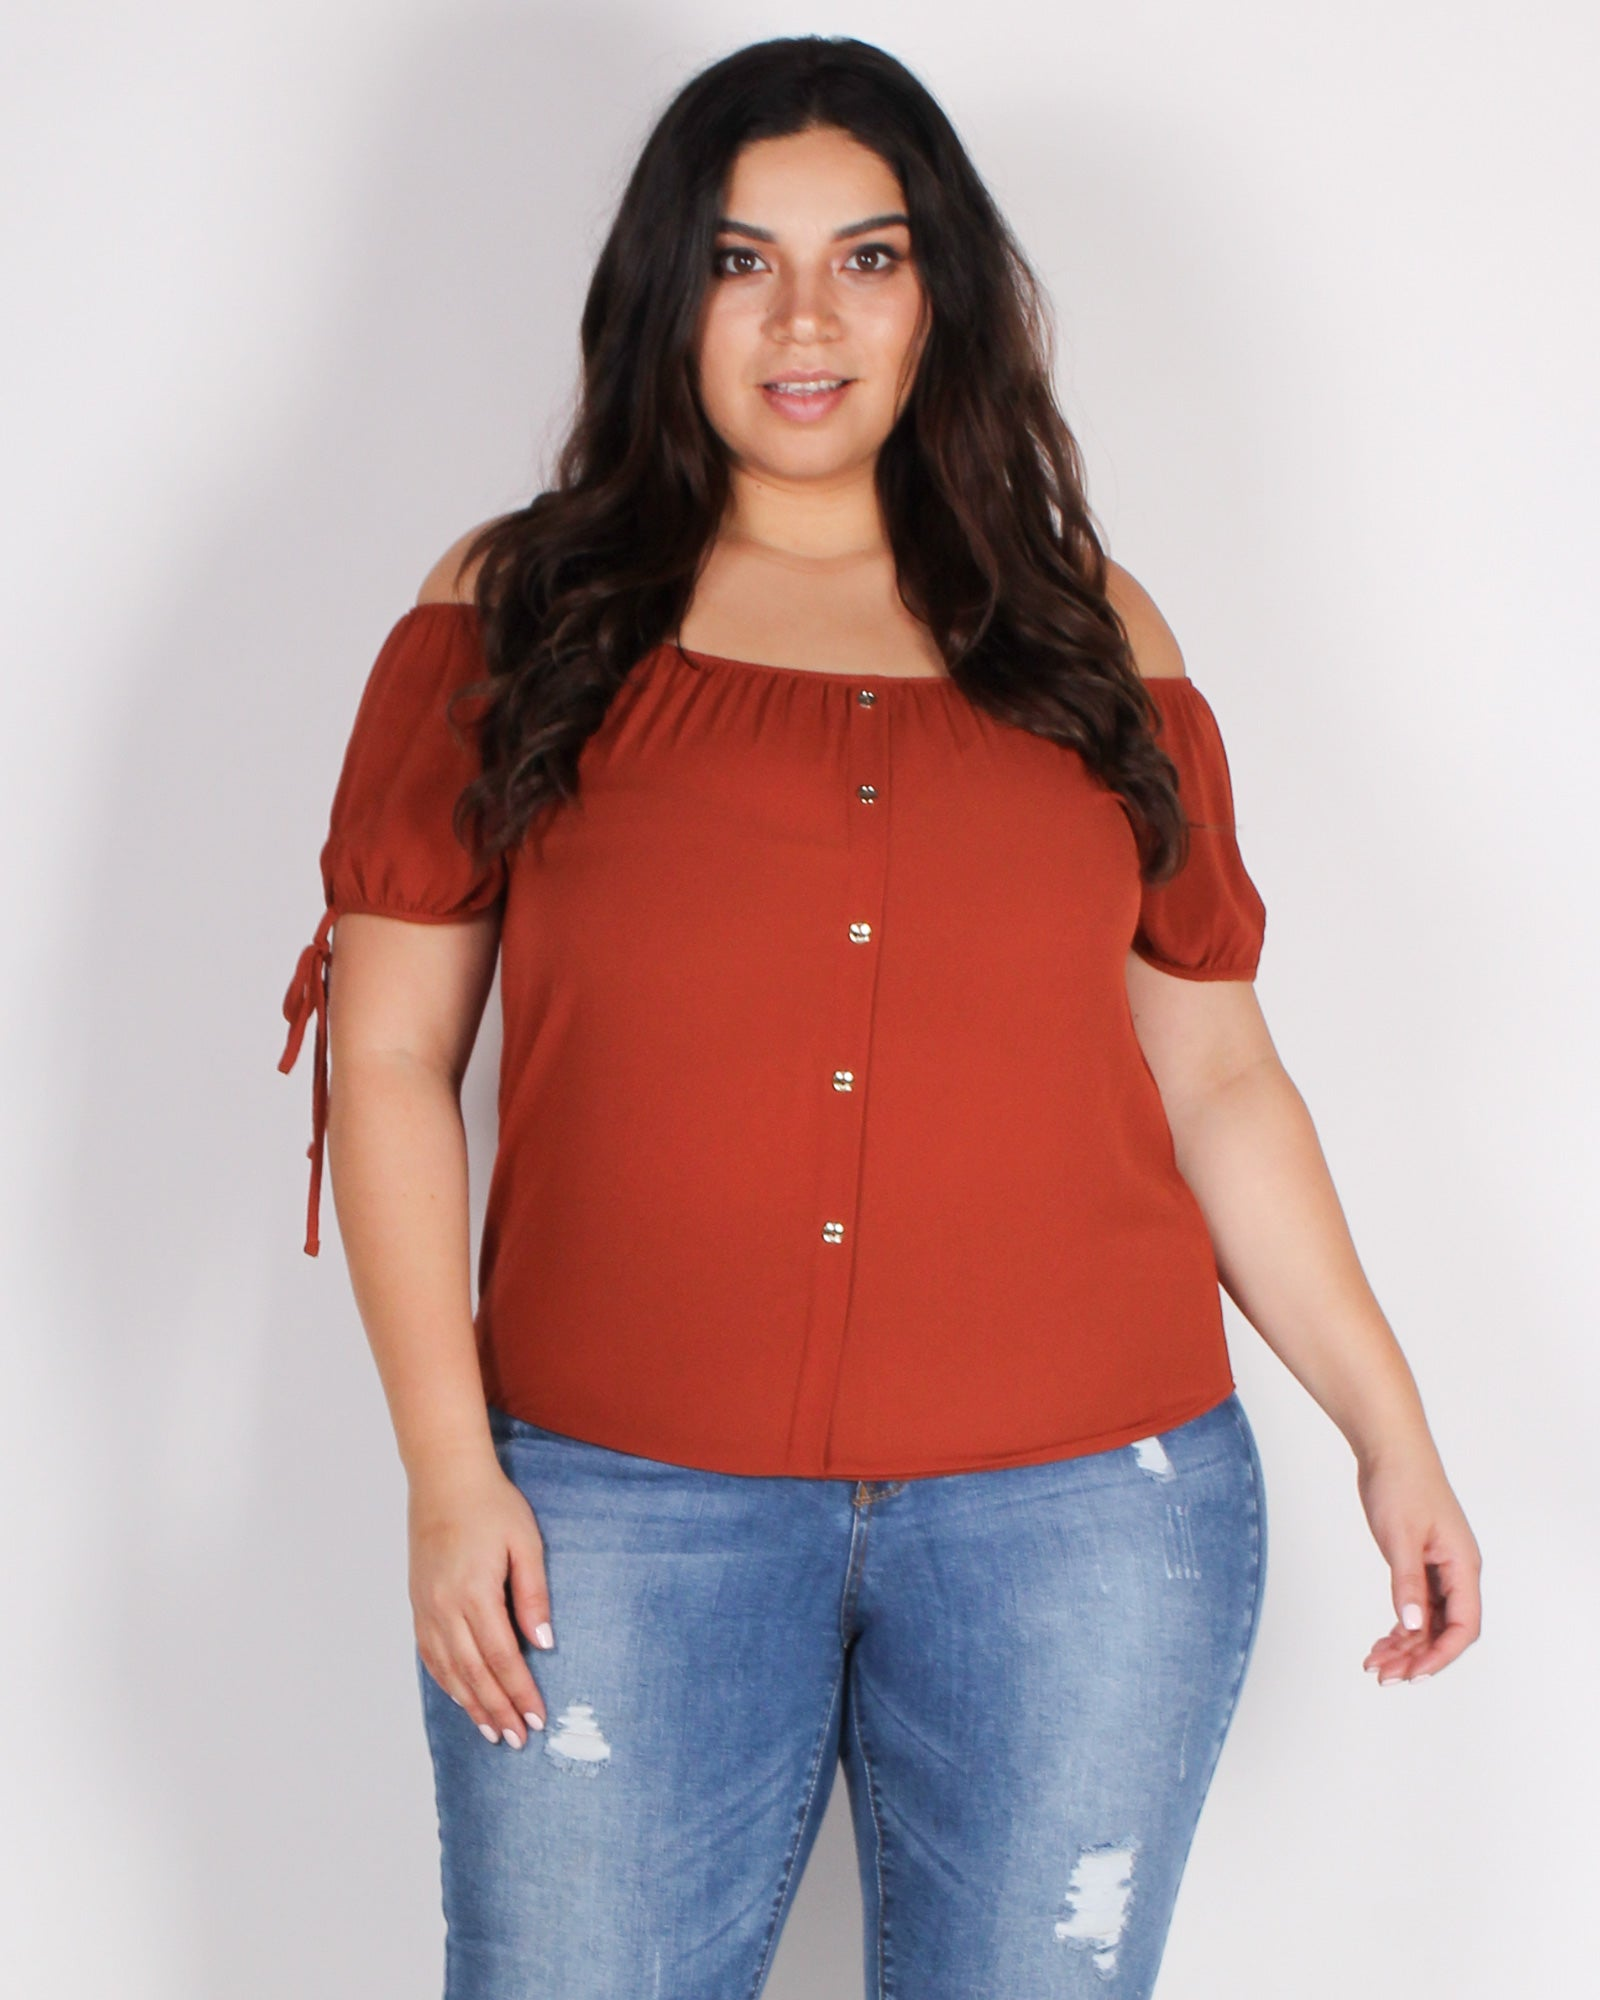 Fashion Q Shop Q It's On, Time to Make the Hustle Happen Blouse (Rust) ZB9517